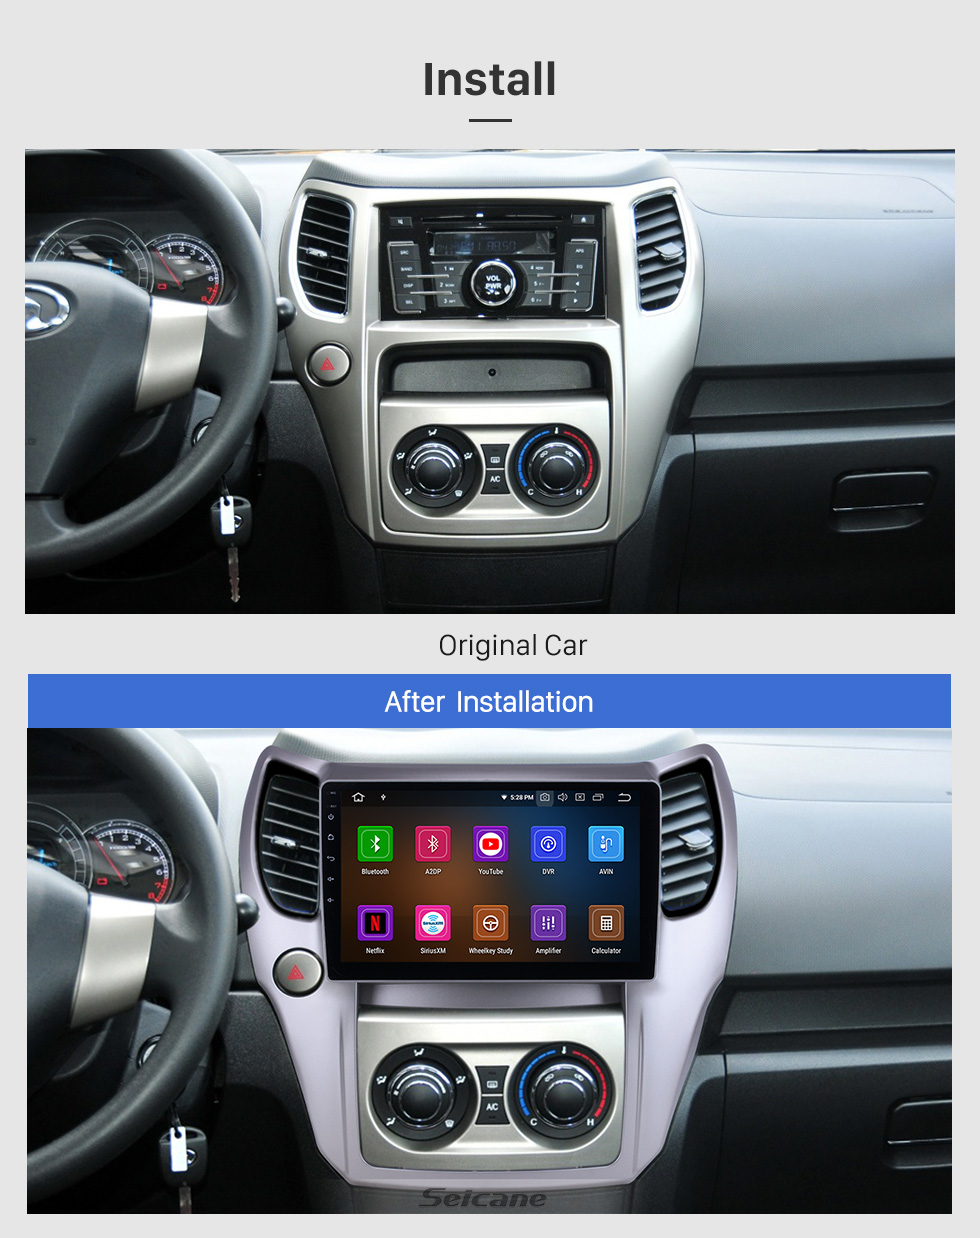 Seicane 10.1 inch For 2012 2013 Great Wall M4 Radio Android 9.0 GPS Navigation Bluetooth HD Touchscreen Carplay support OBD2